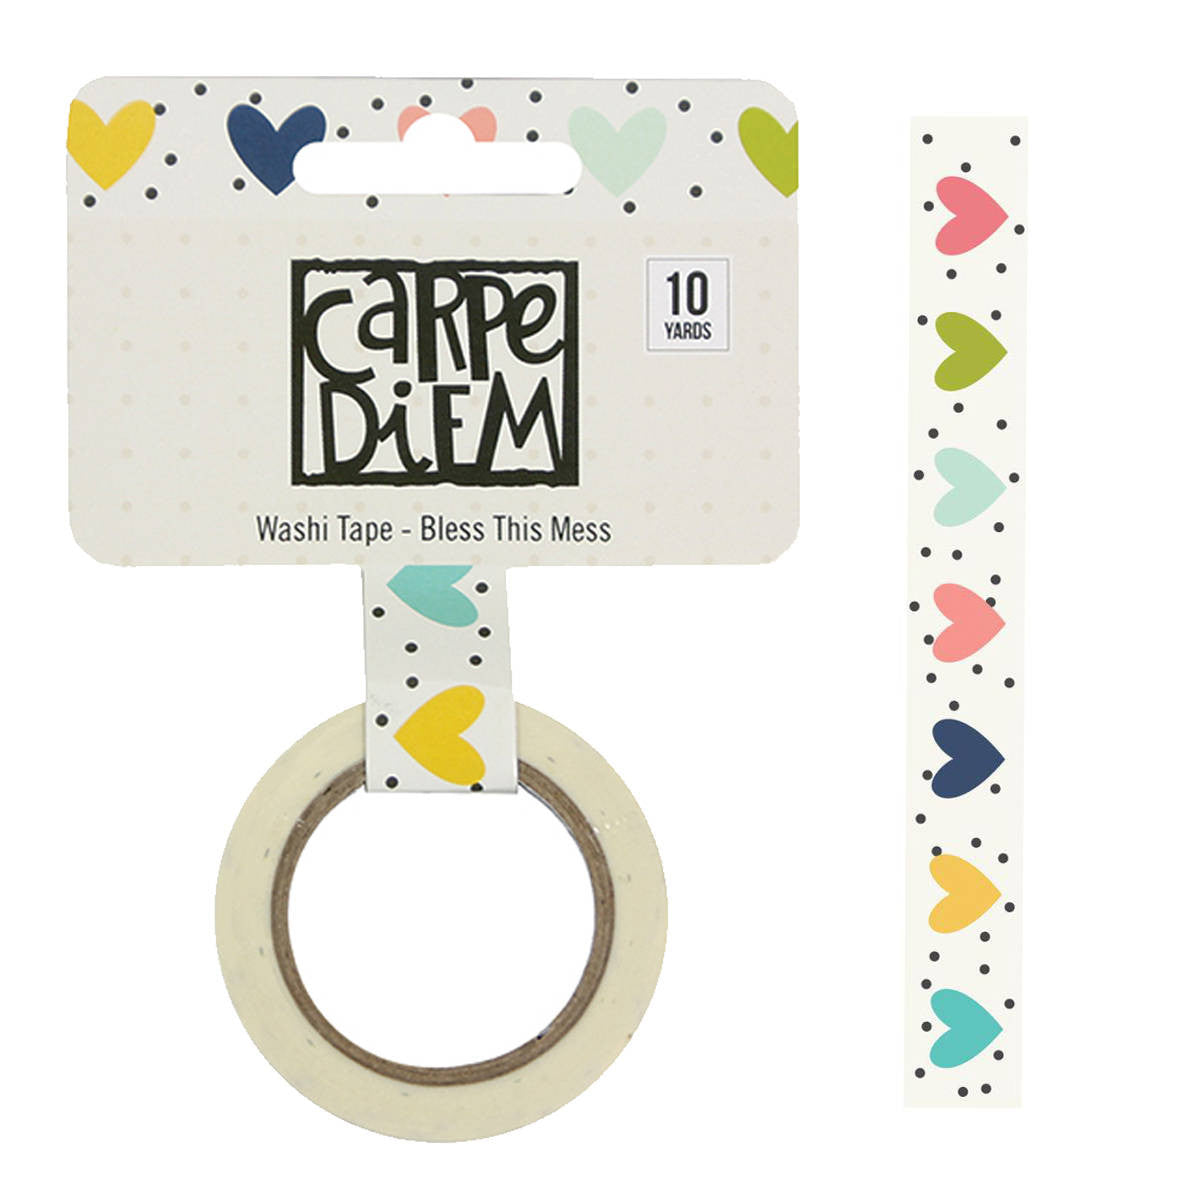 Domestic Bliss Home BLESS THIS MESS Carpe Diem Washi Tape, 15mm x 10 yards